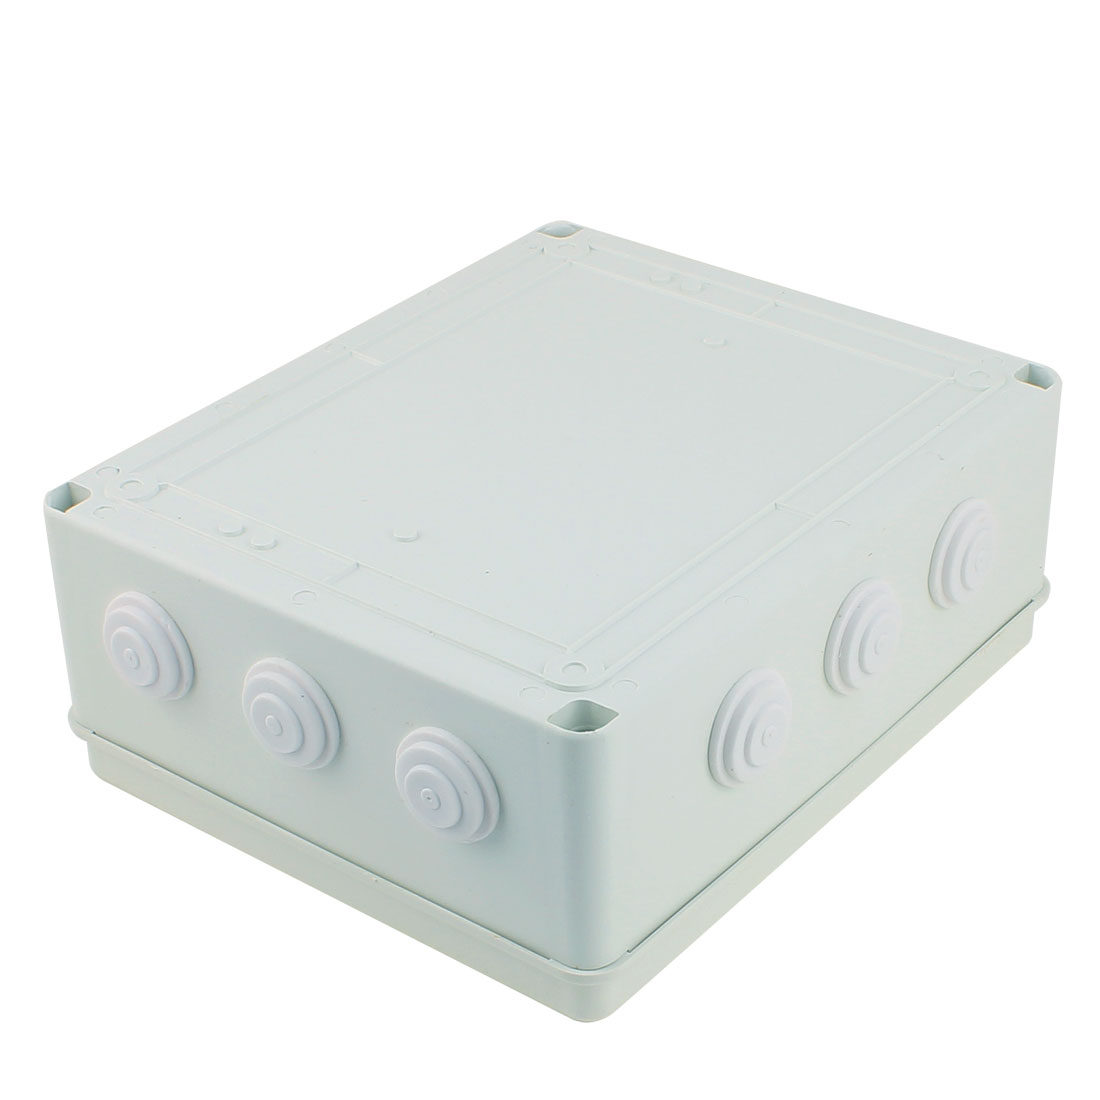 White ABS Dustproof IP65 Enclosure Square Junction Box 300x250x120mm